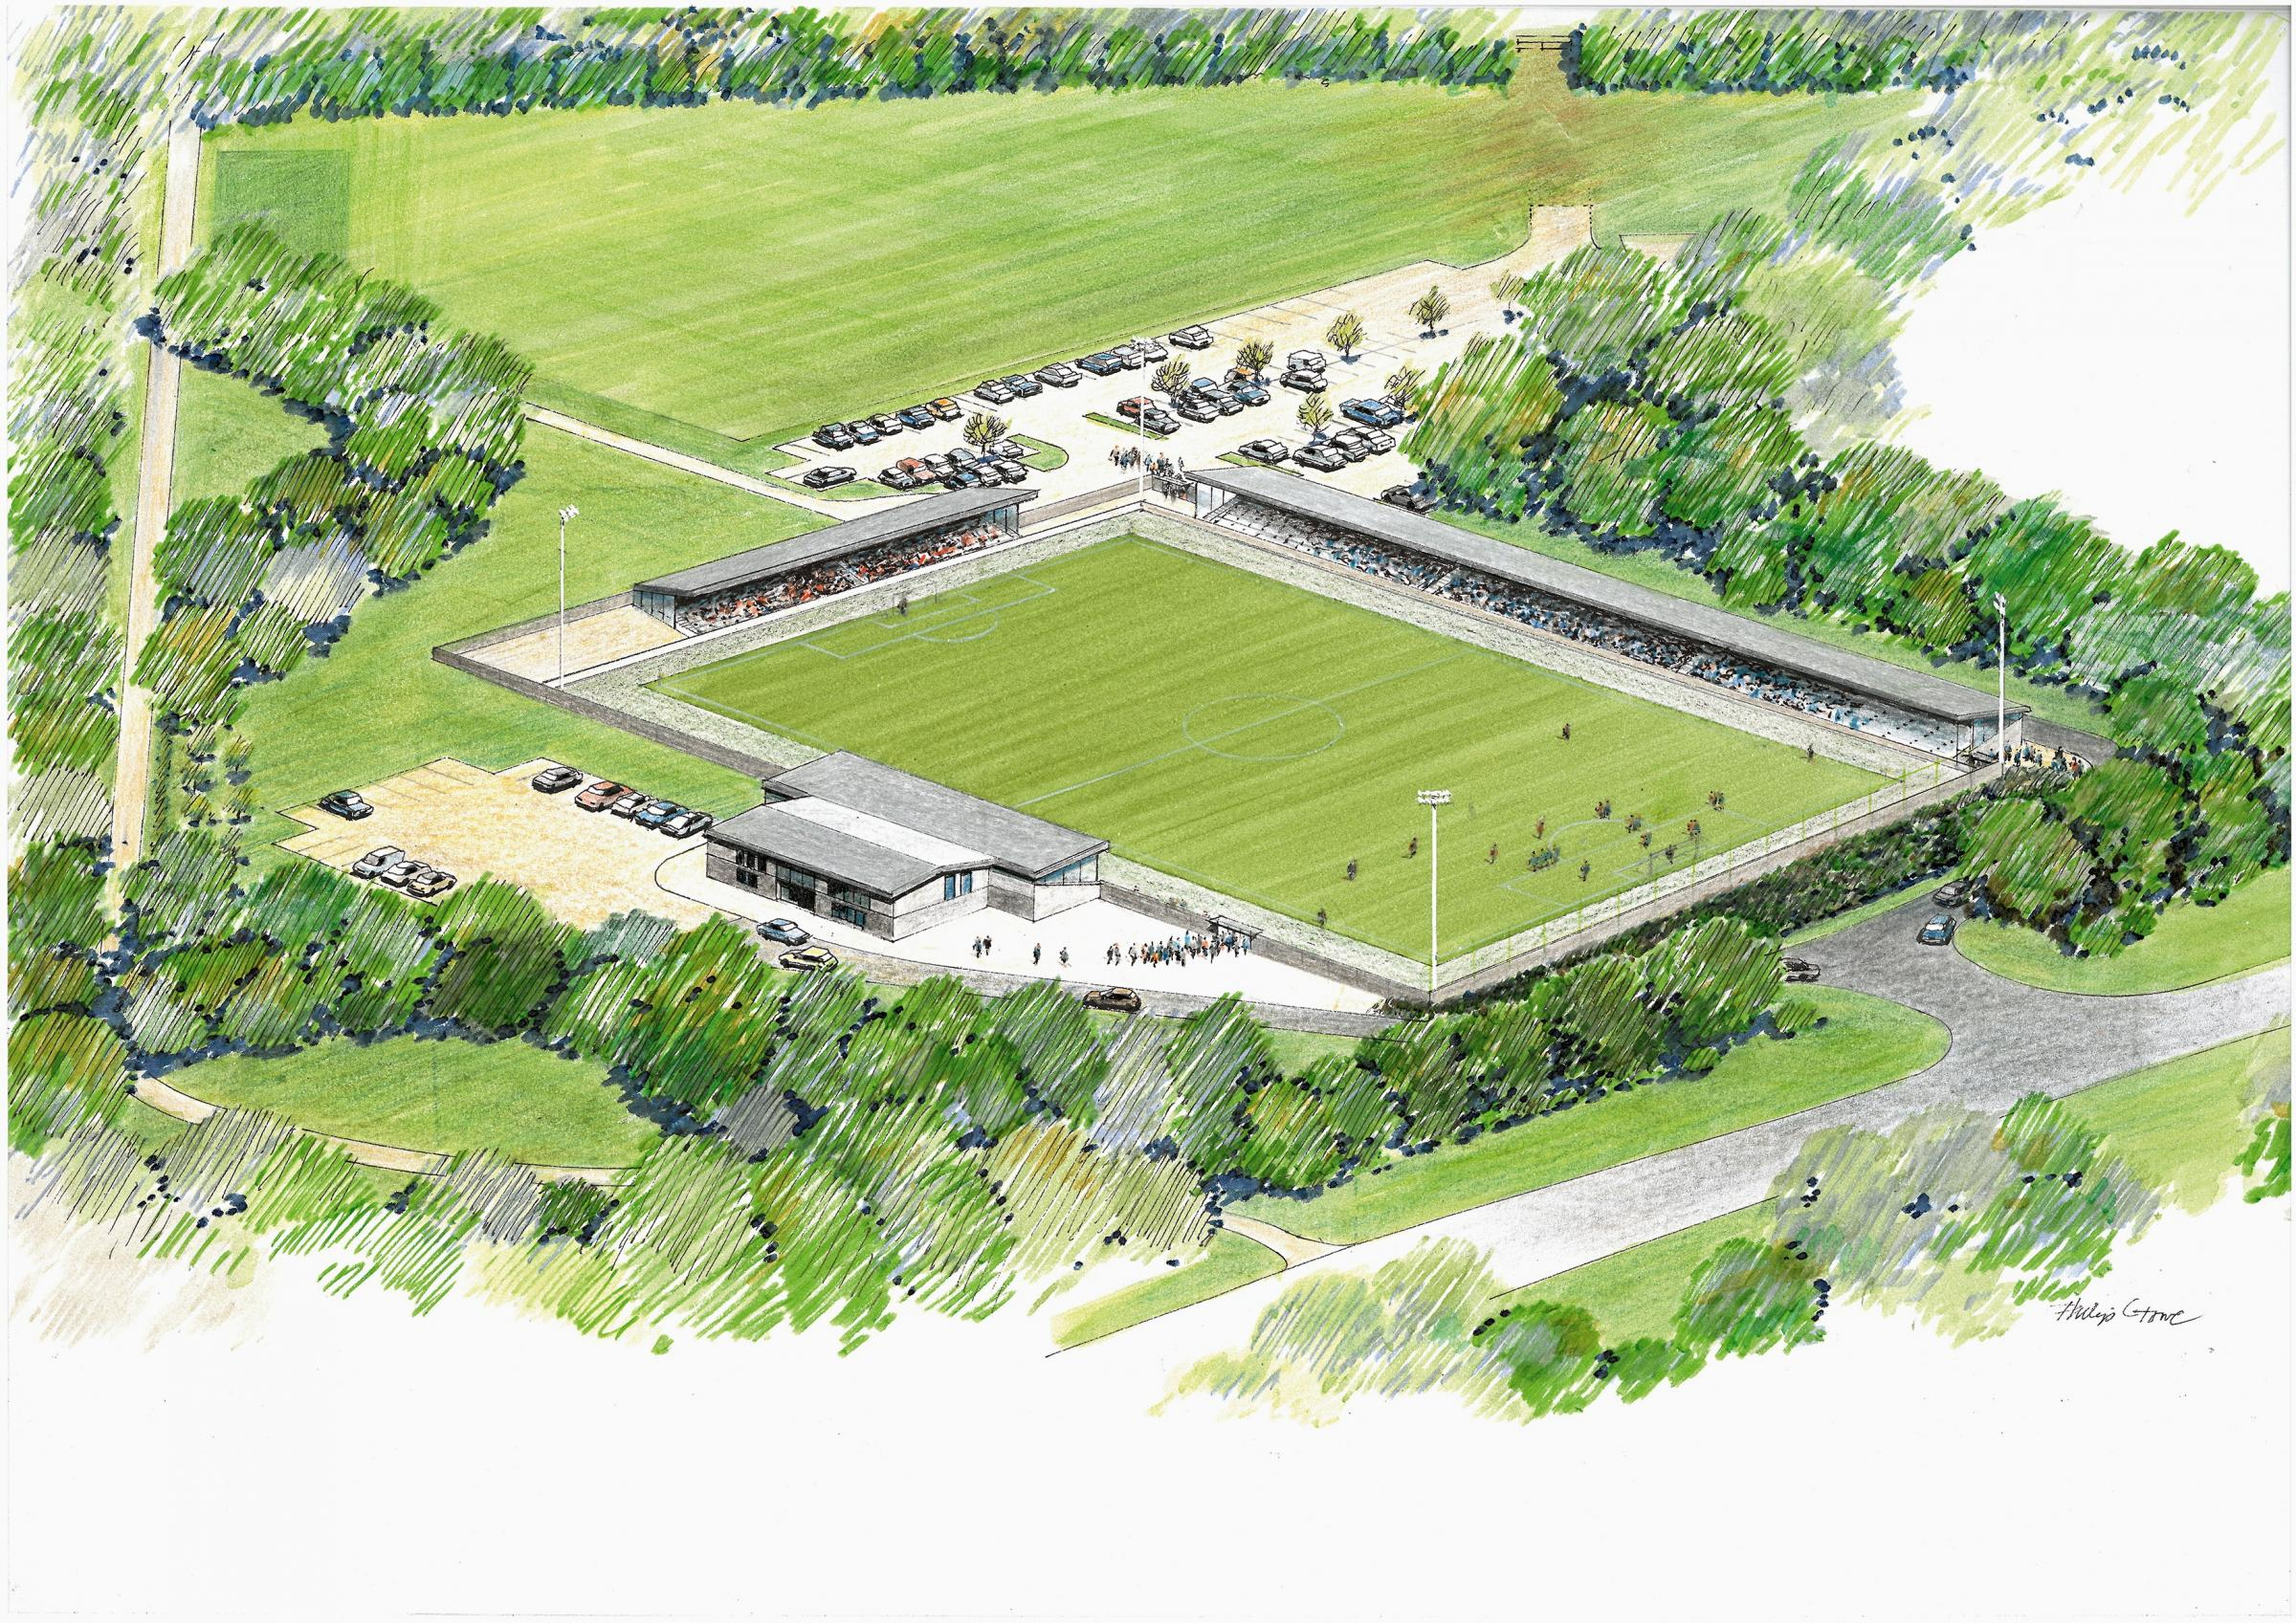 An artist's impression of Basingstoke Town's proposed new stadium